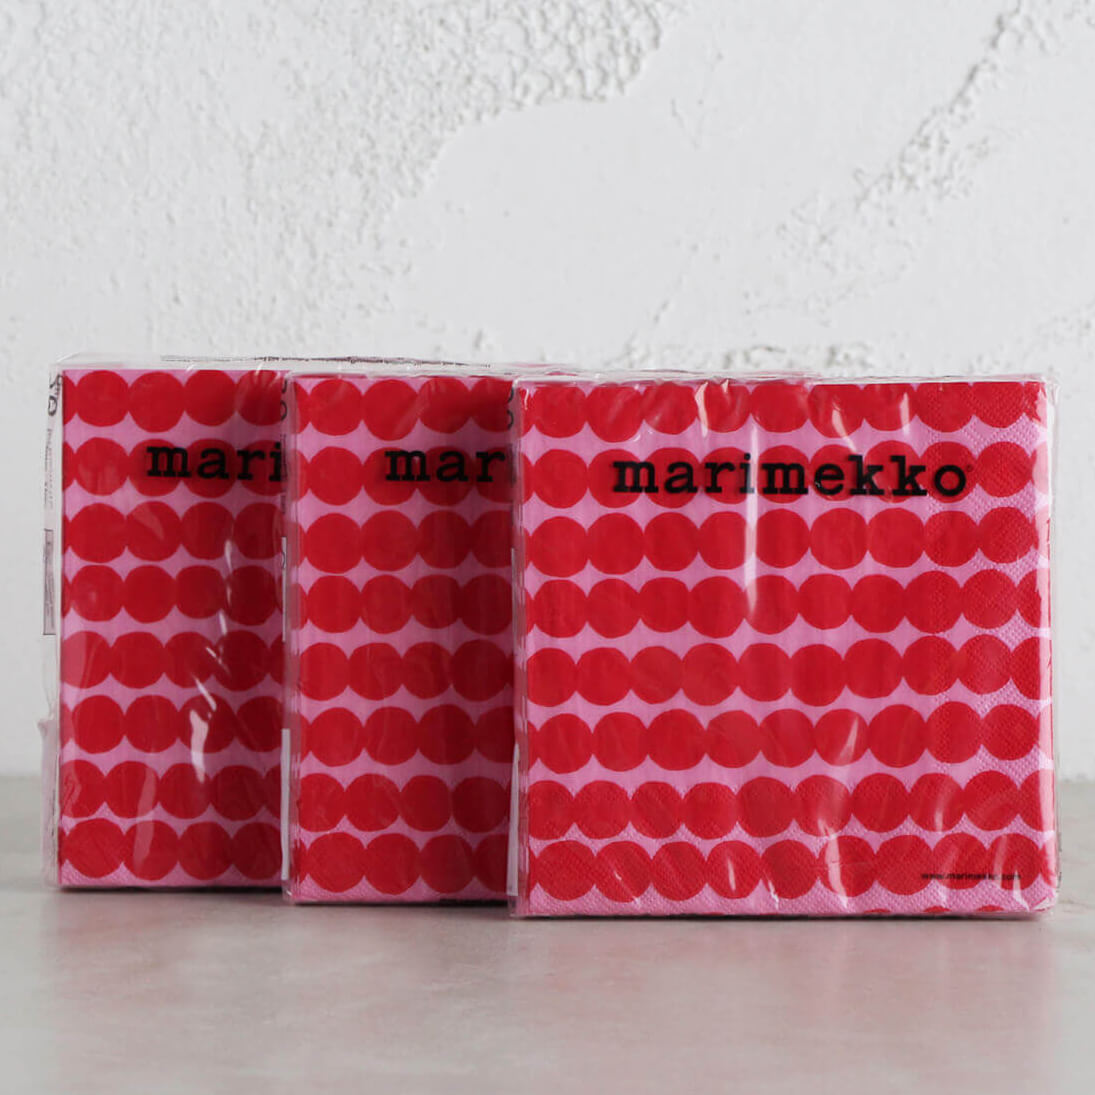 MARIMEKKO  |  RASYMATTO ROSE PINK PAPER NAPKINS |  LUNCH SERVIETTES BUNDLE OF 3